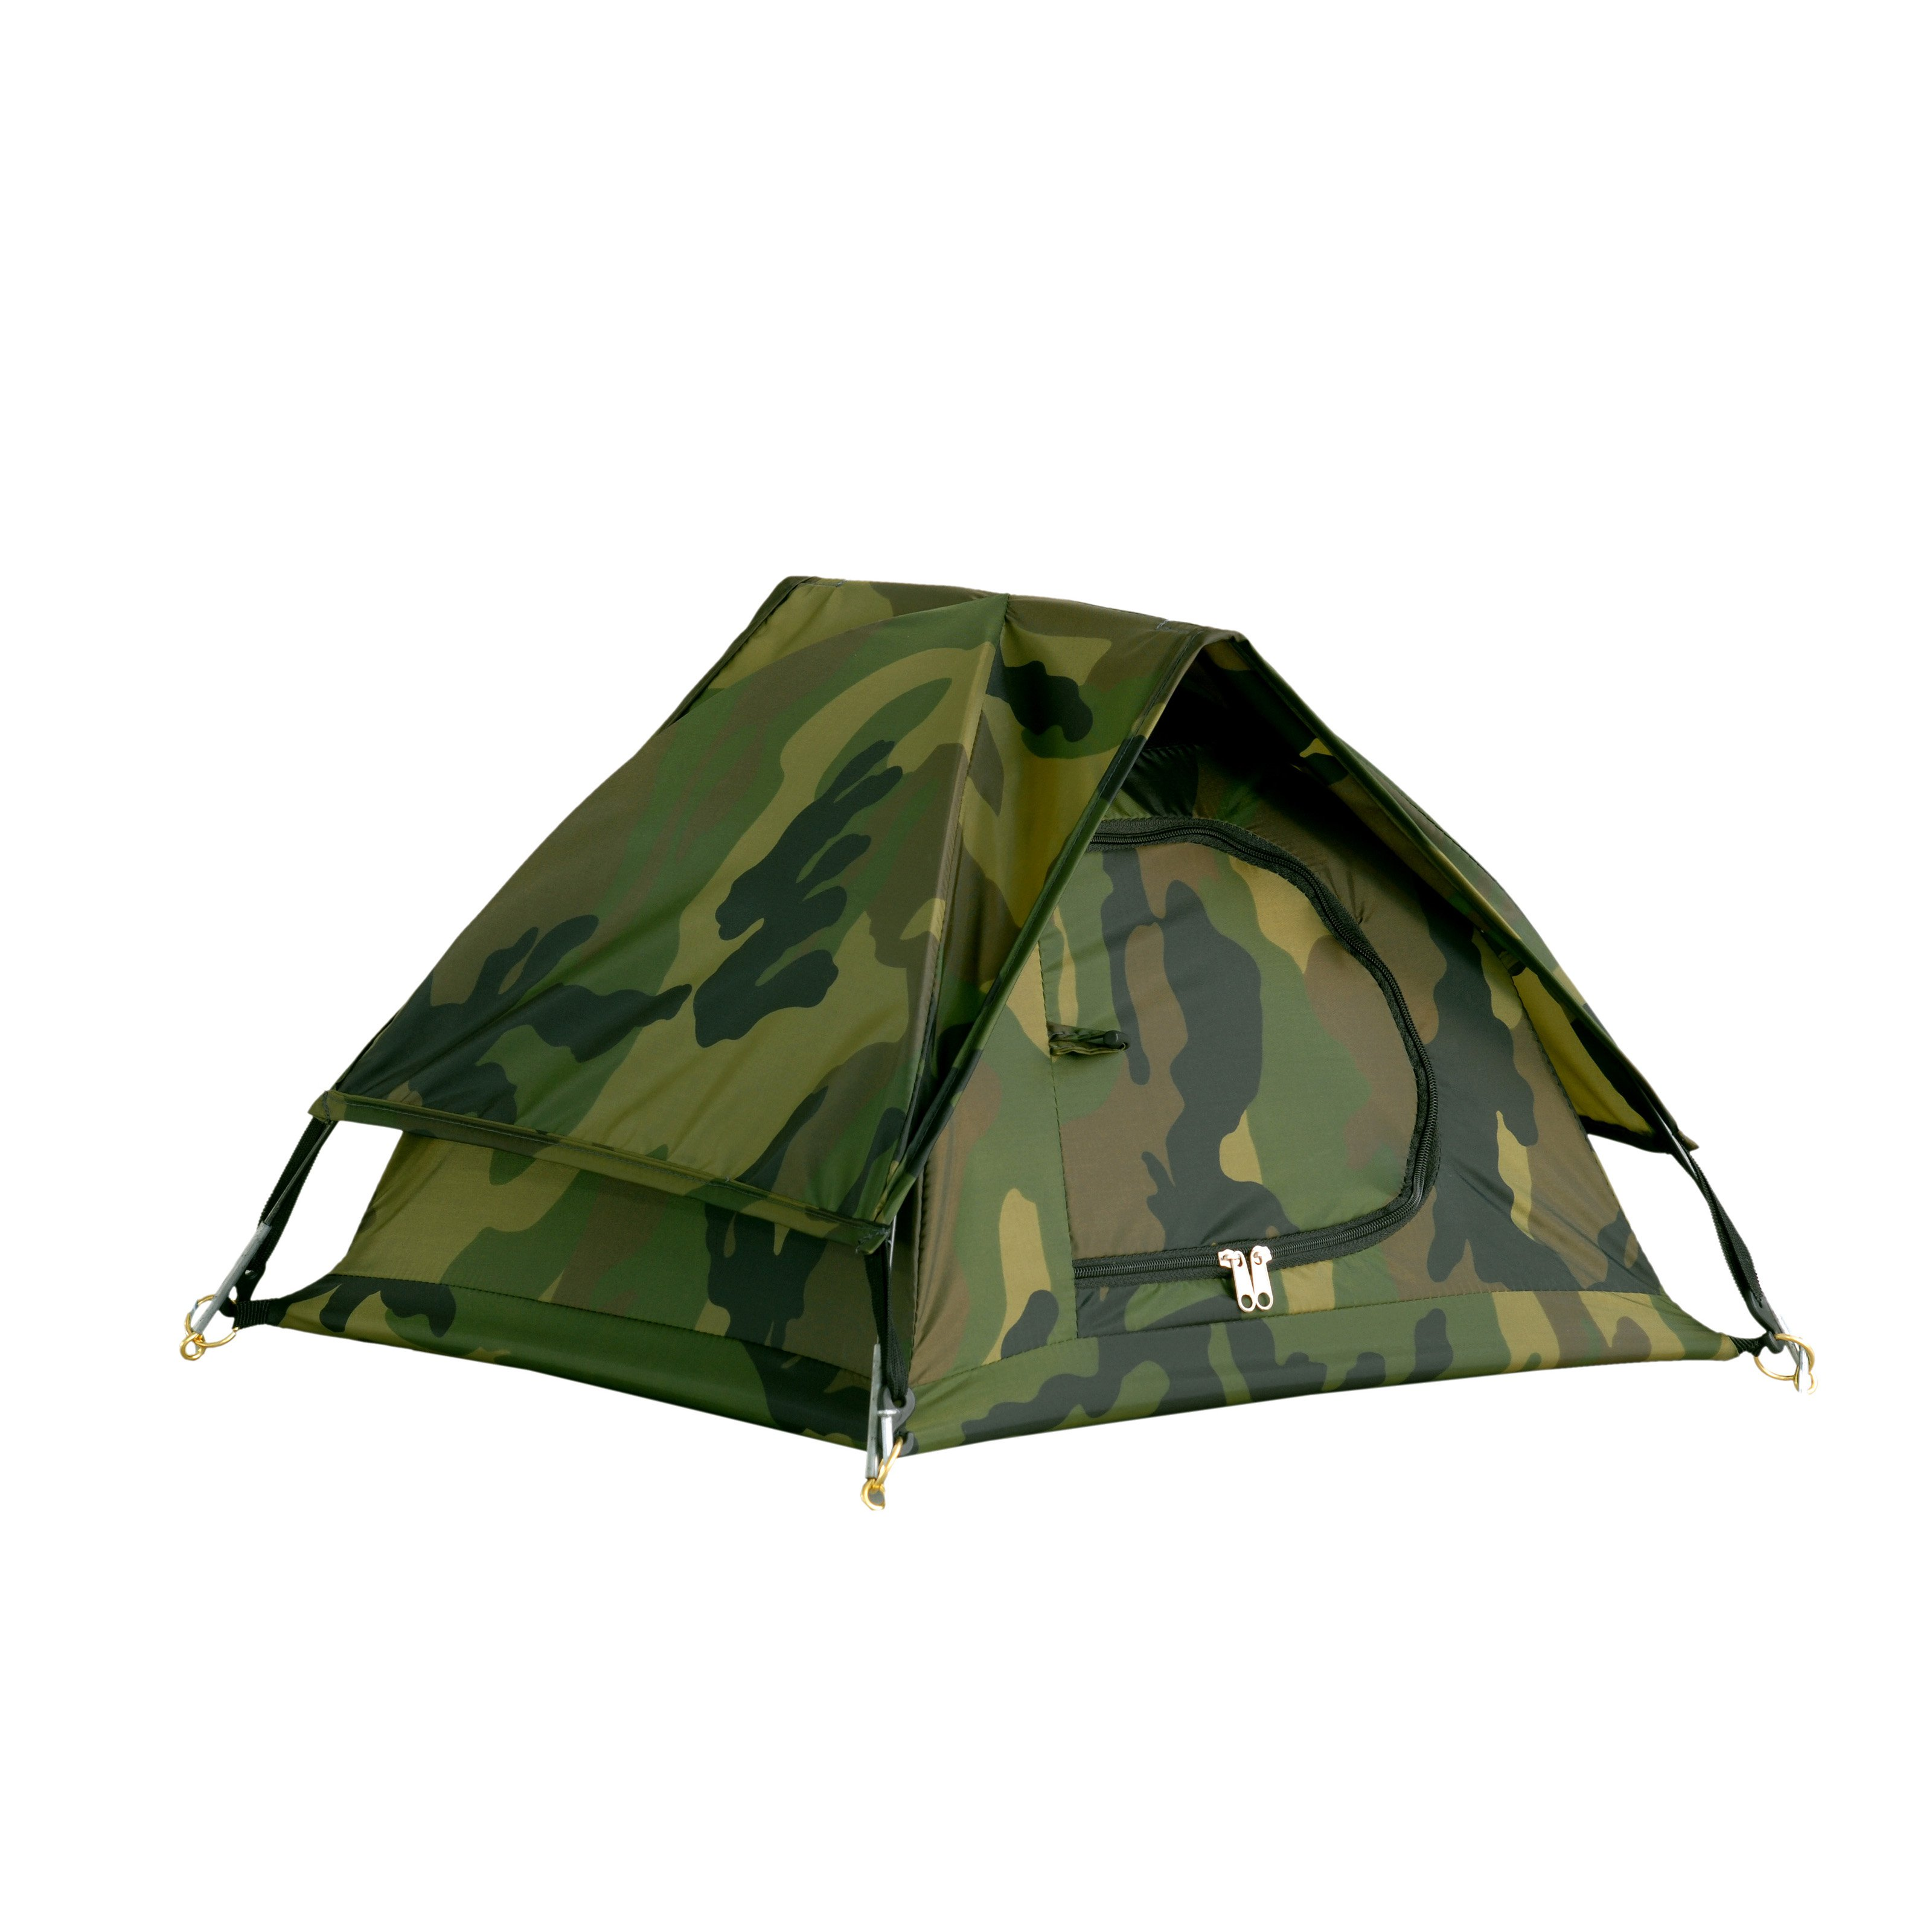 Tents For Kids MUV Play Tent Mesh Vents Camouflage Army Military Vehicle Design